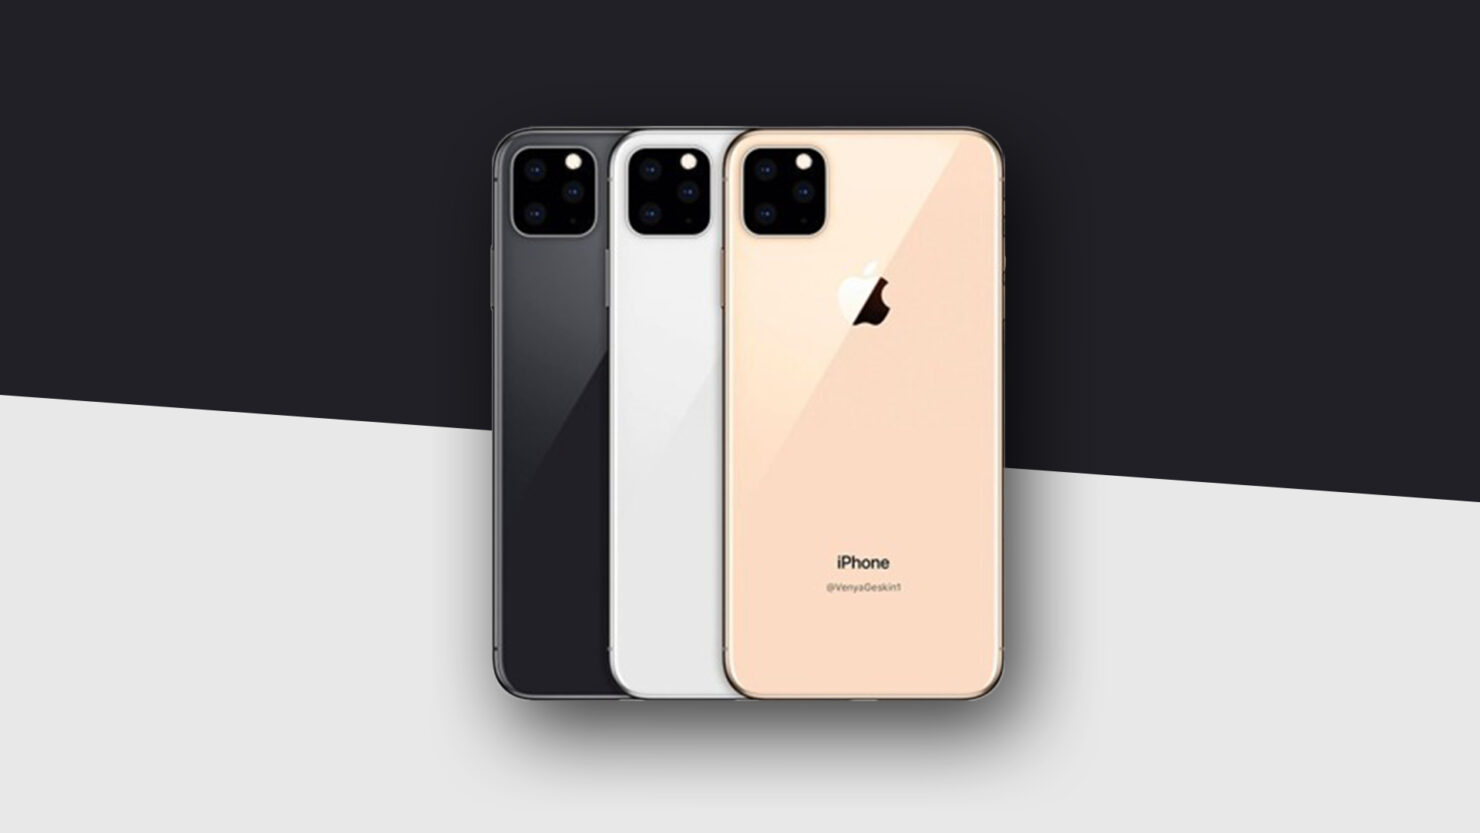 Apple 2019 iPhone lineup 18W charger